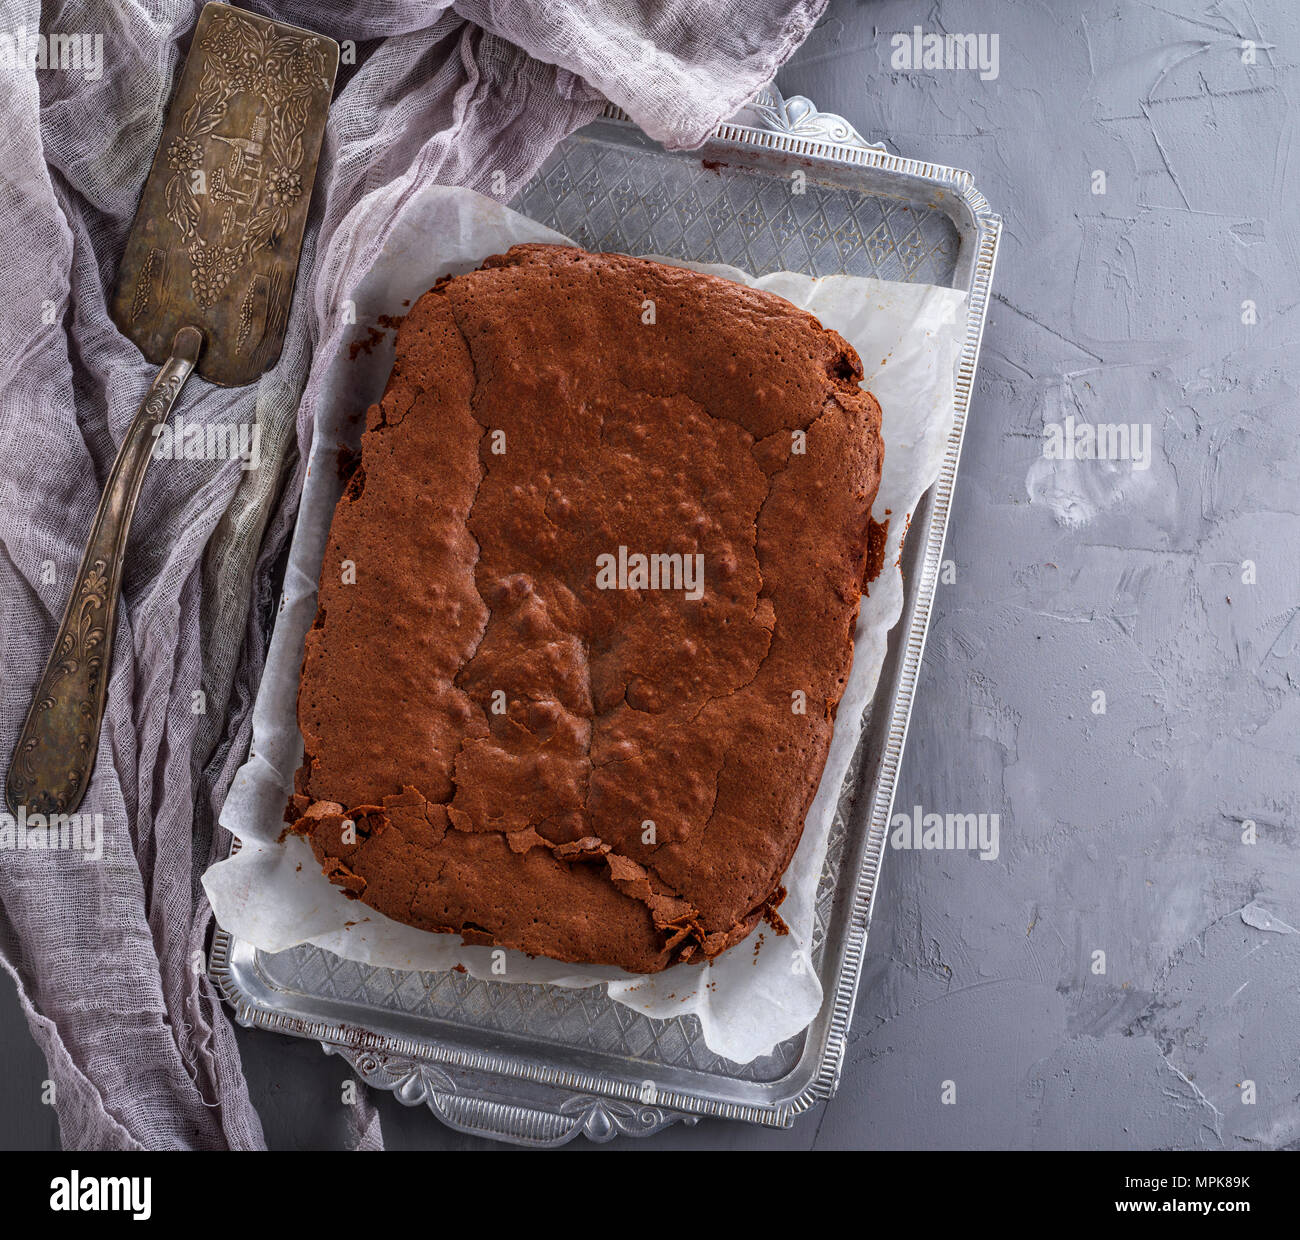 baked chocolate brownie cake on a plate of iron, gray background, view from above - Stock Image